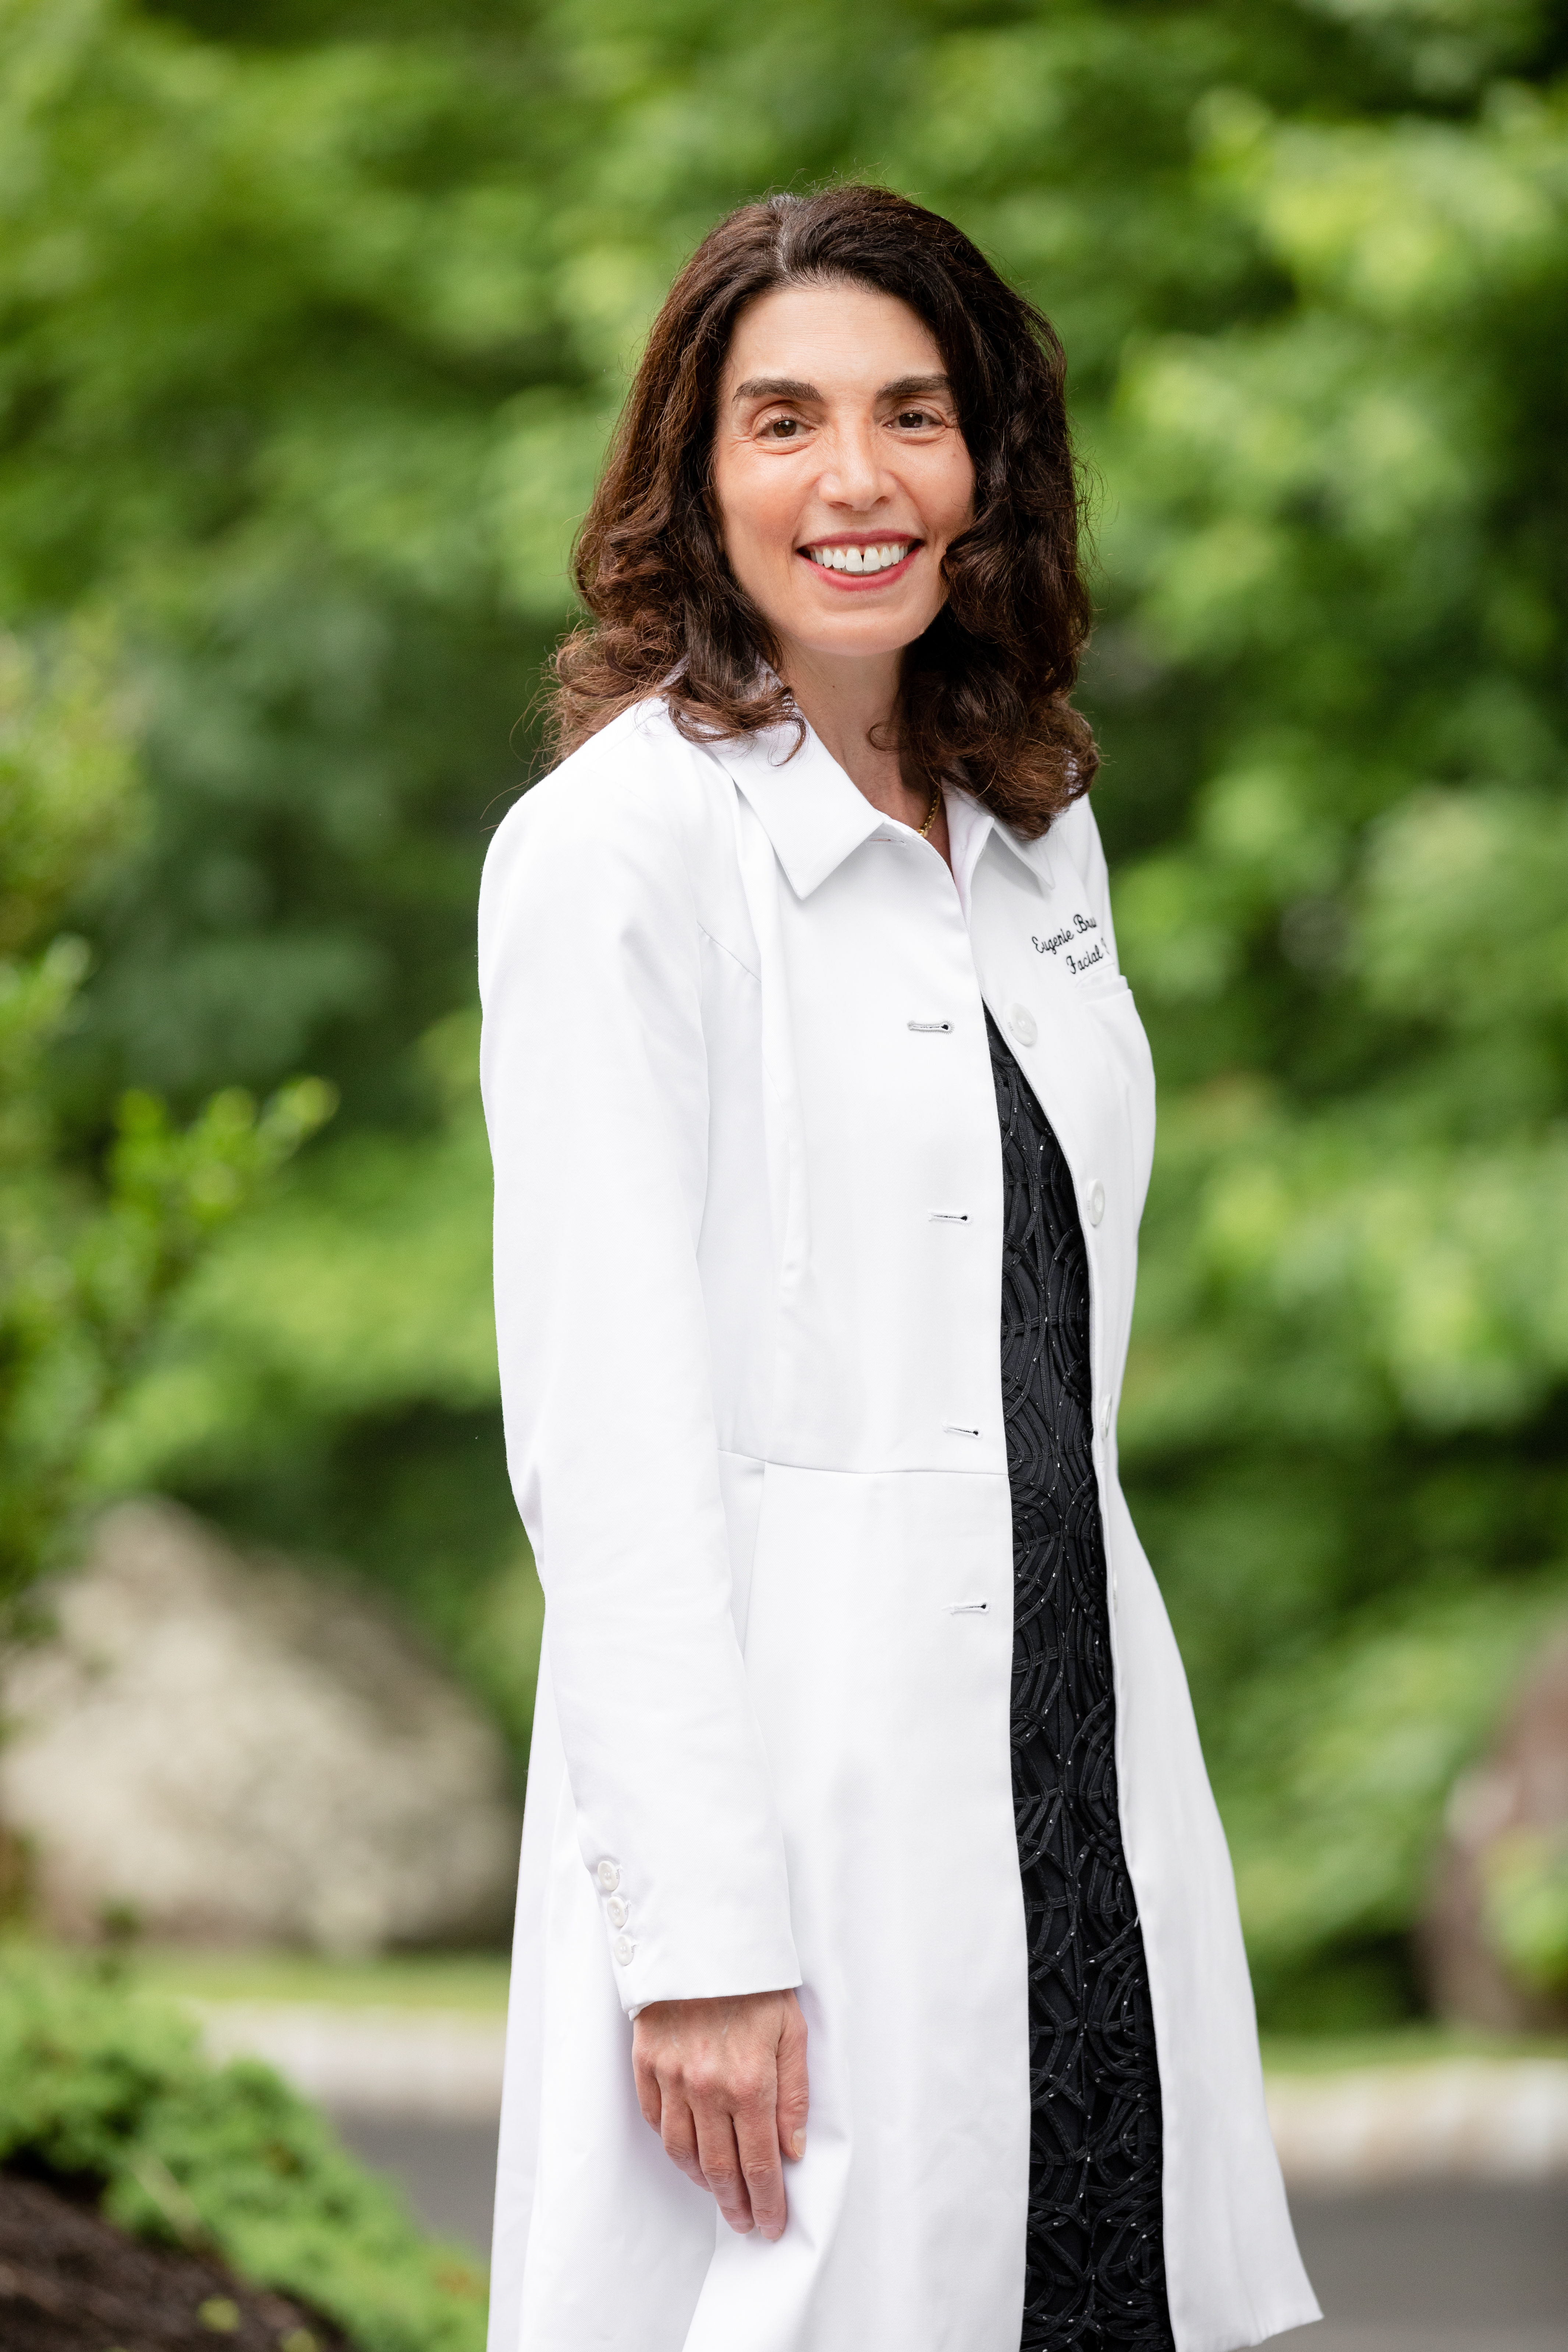 Dr. Eugenie Brunner, a Facial Plastic Surgeon in Princeton, New Jersey